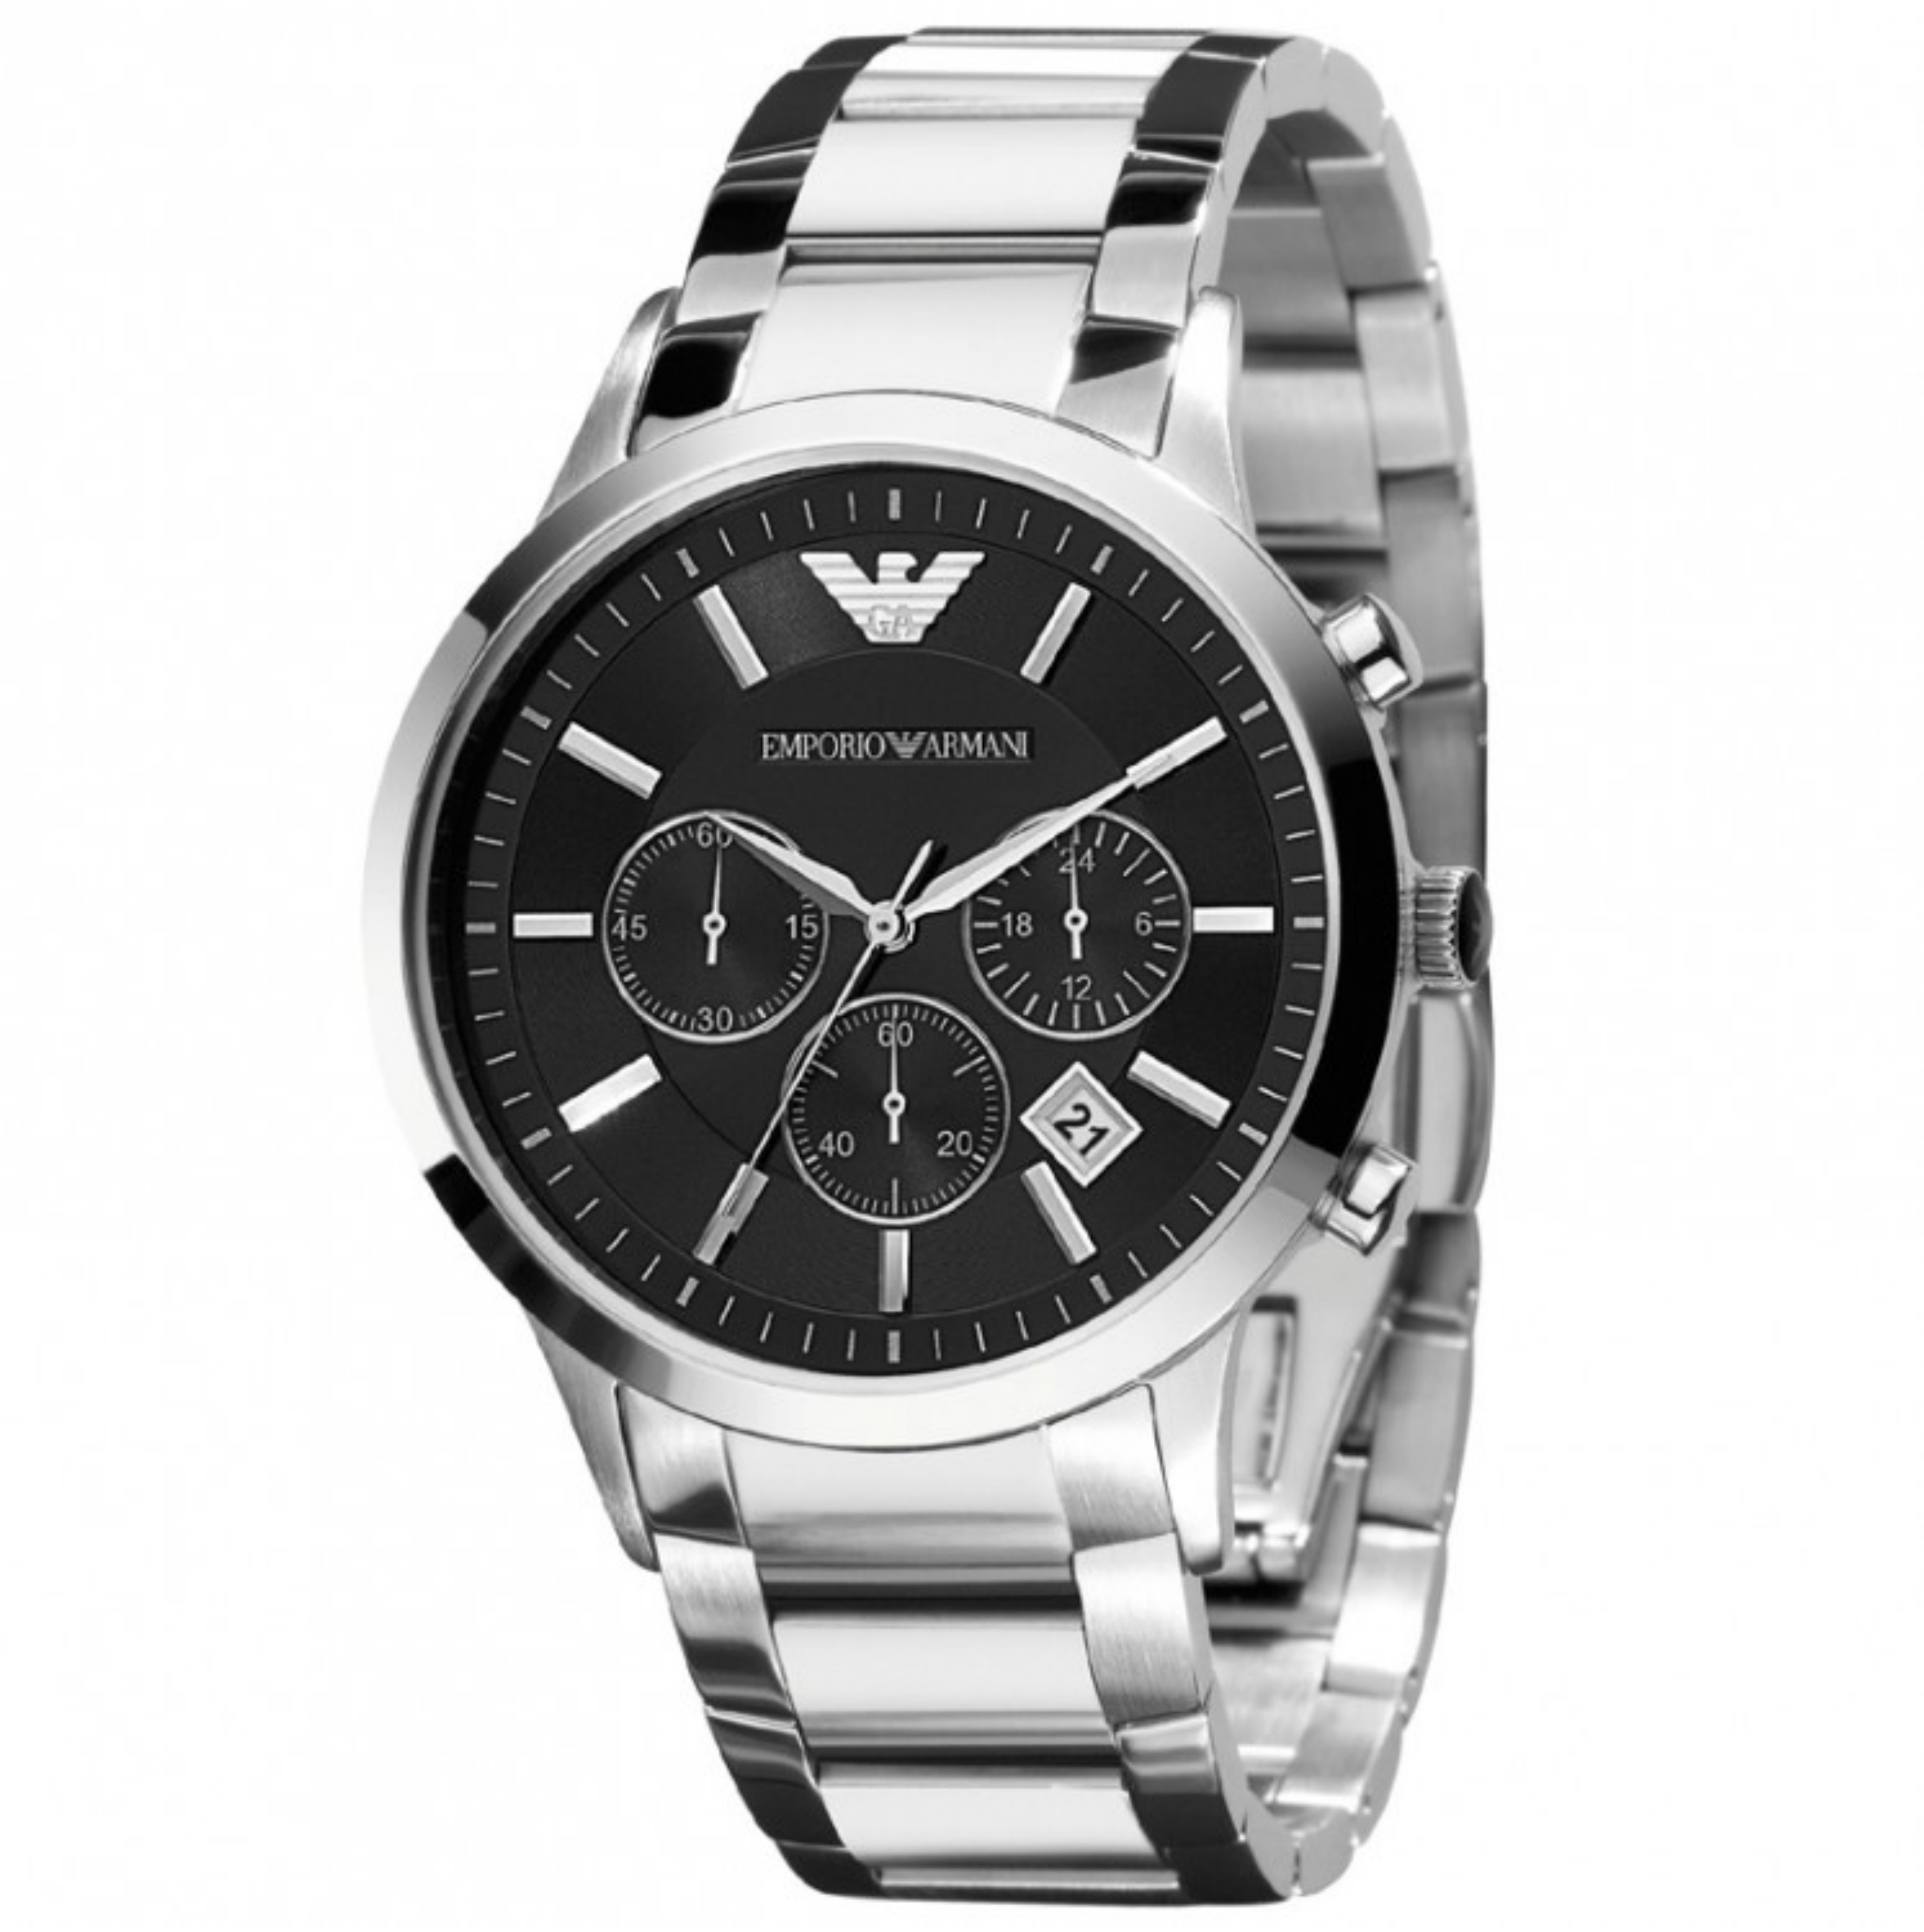 Emporio Armani Sportivo Gent's Stainless Steel Chronograph Watch AR0389